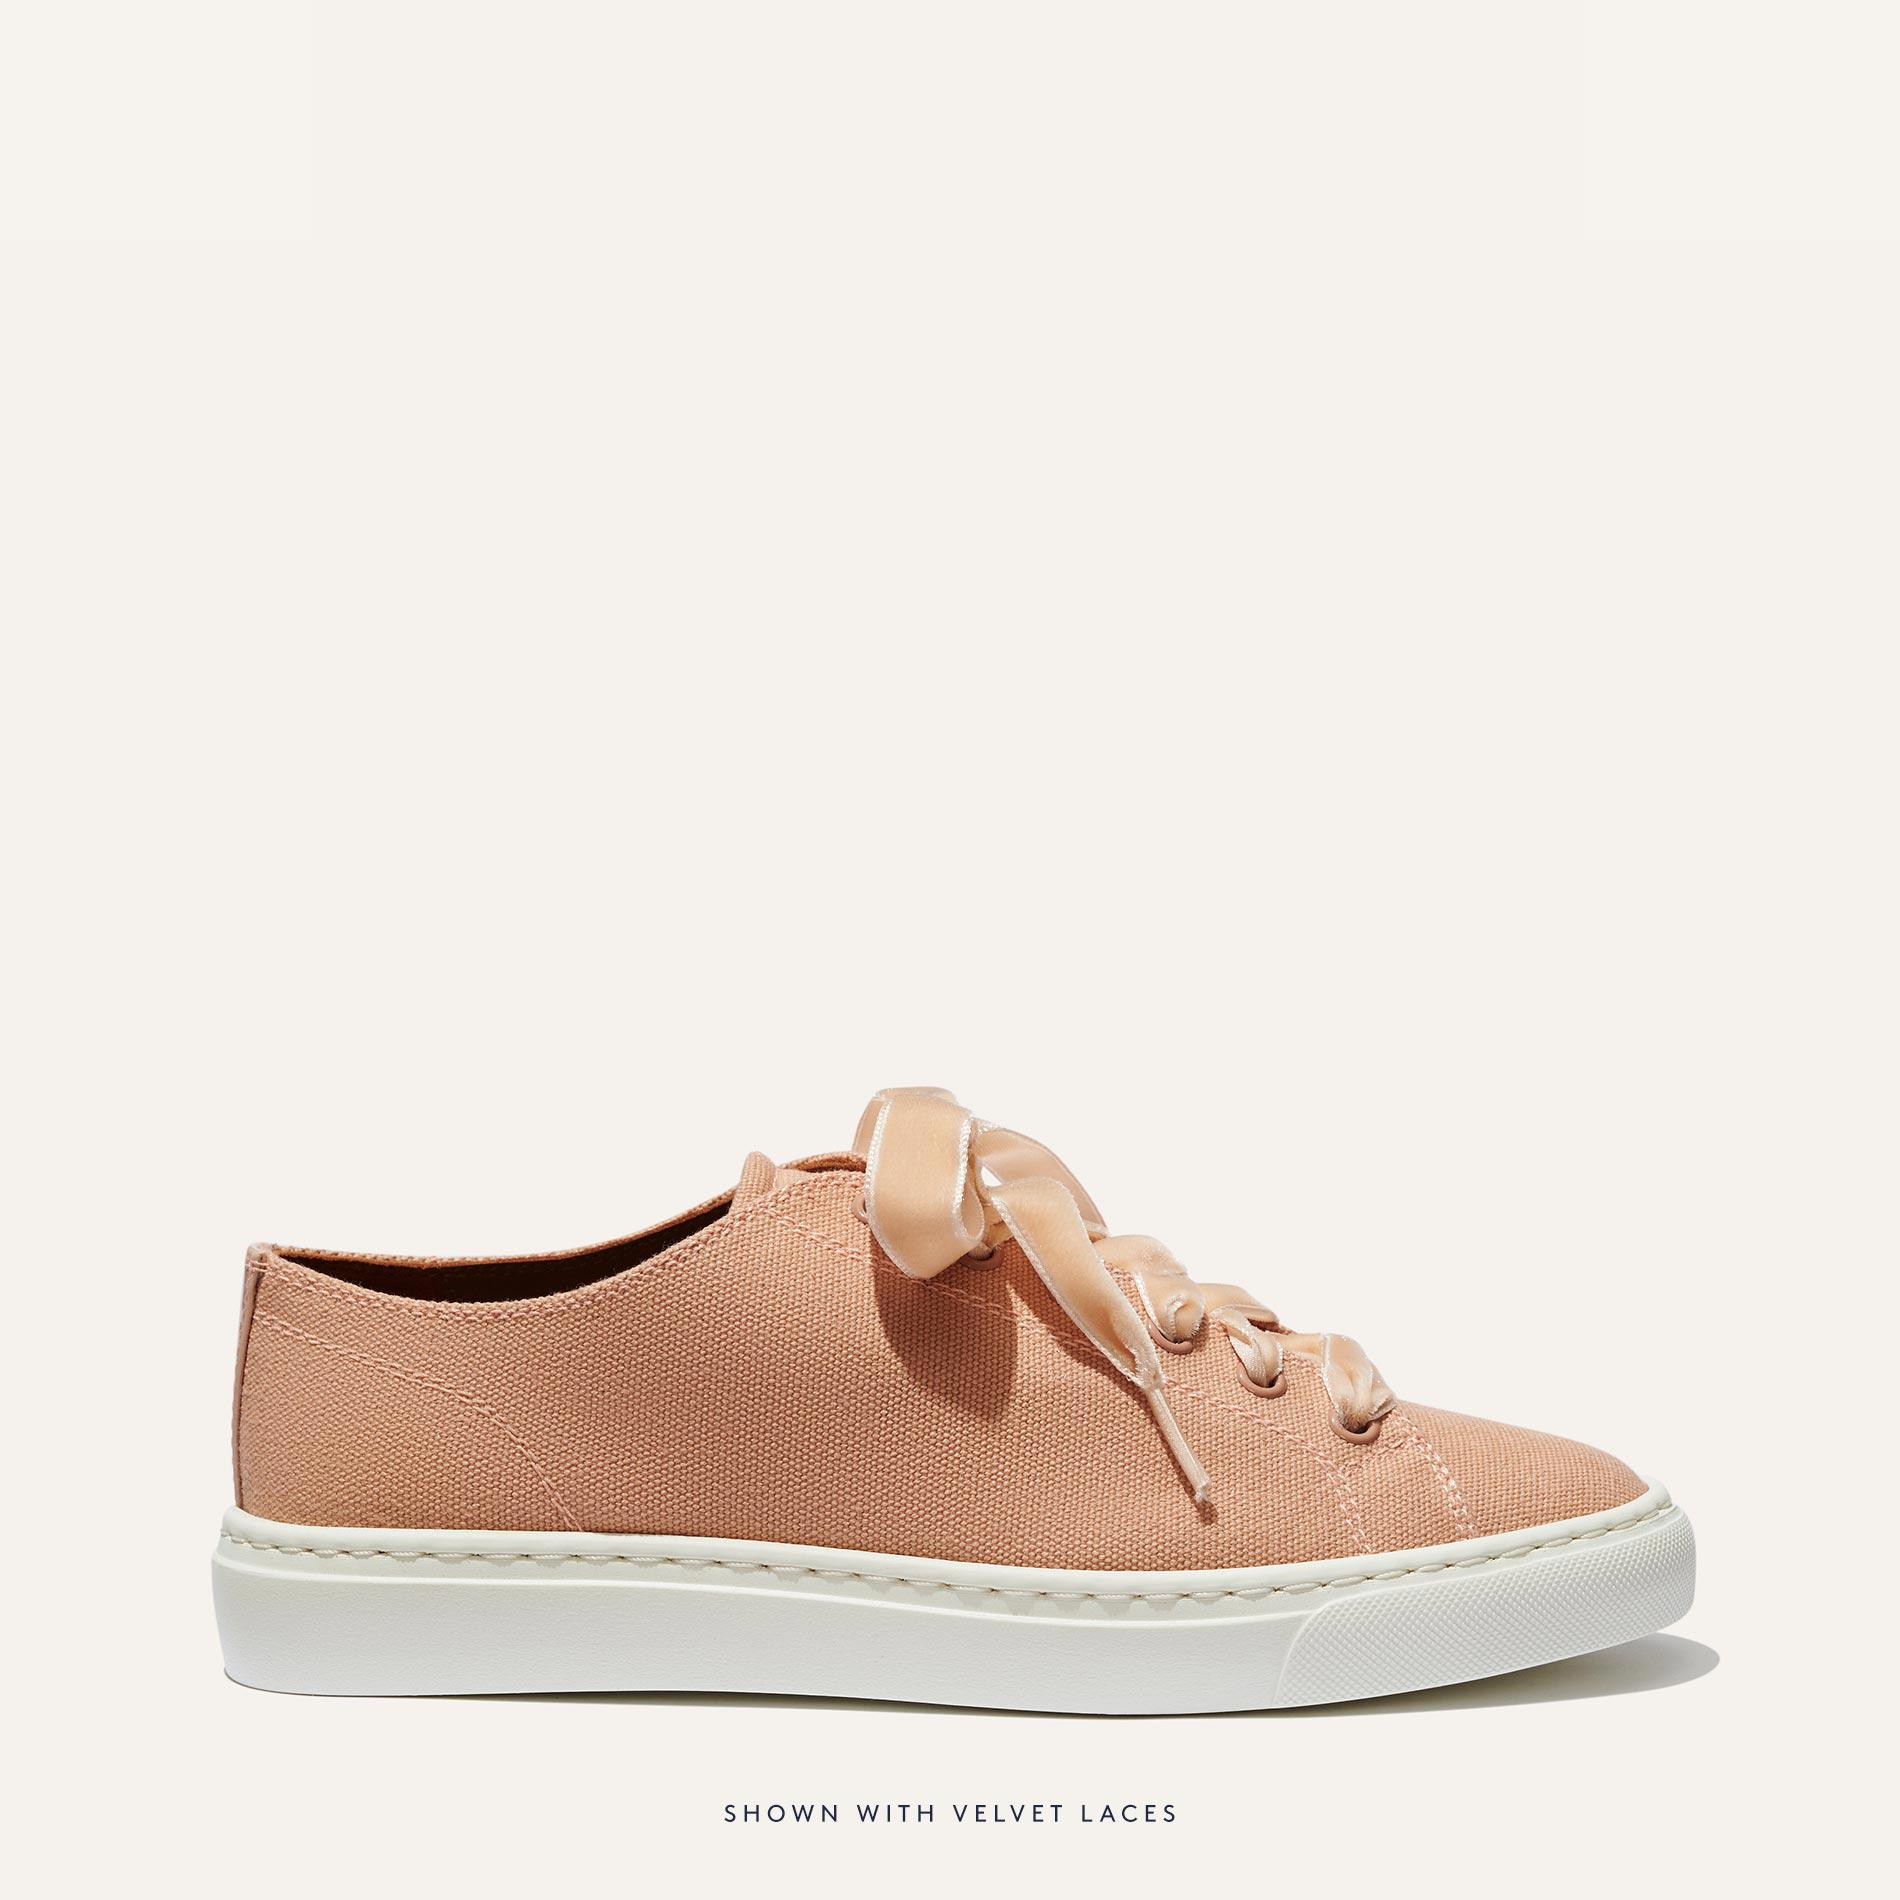 The Summer Sneaker - Rose Canvas